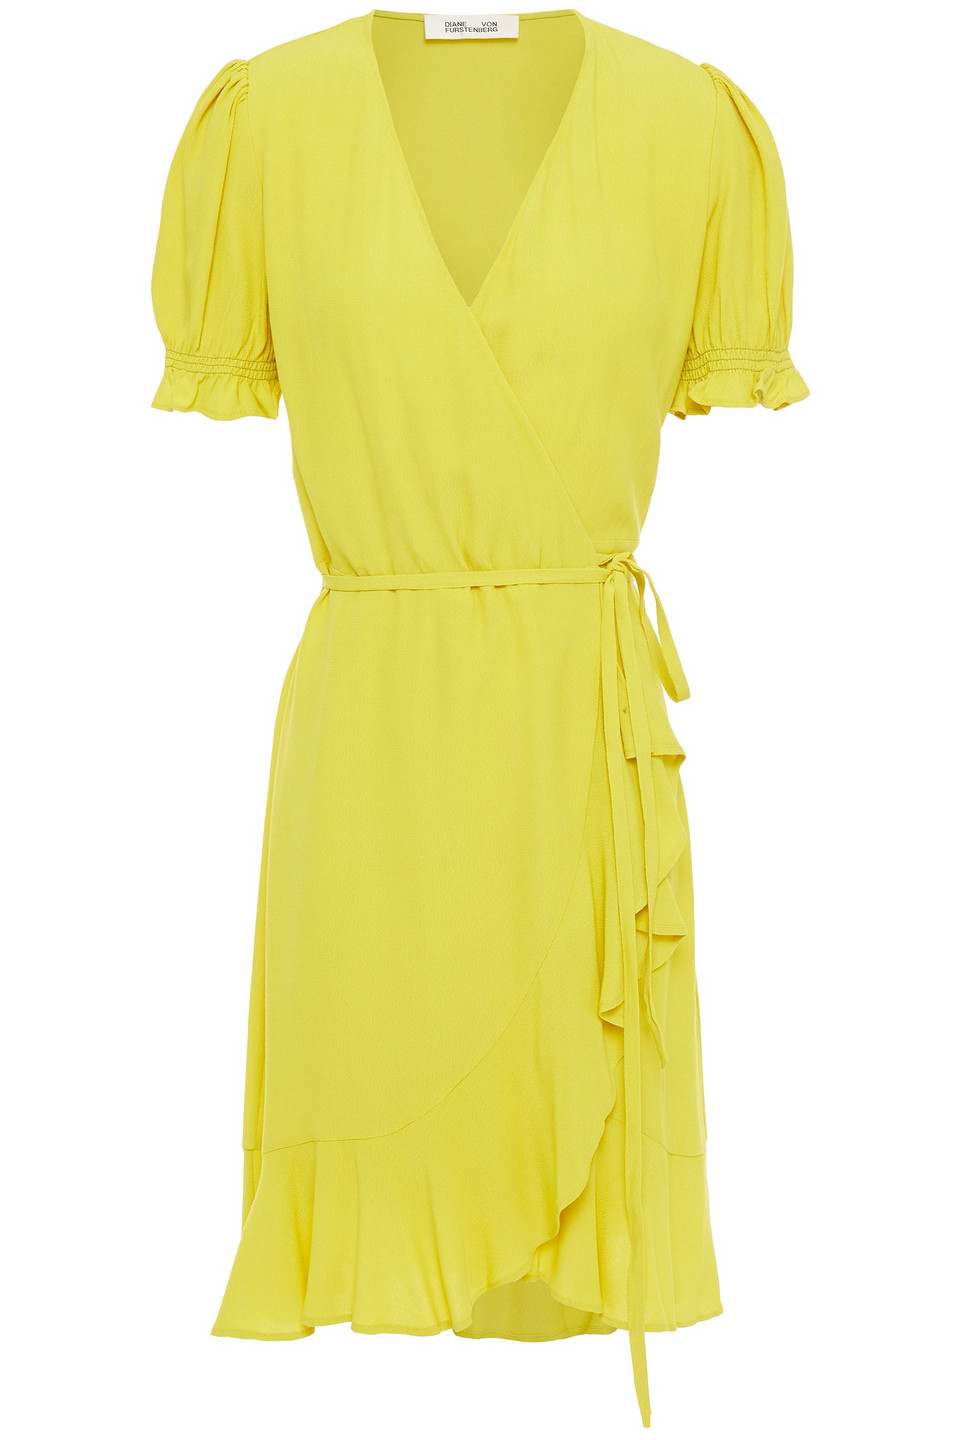 Diane Von Furstenberg | Diane Von Furstenberg Woman Emilia Ruffled Crepe Mini Wrap Dress Chartreuse | Clouty